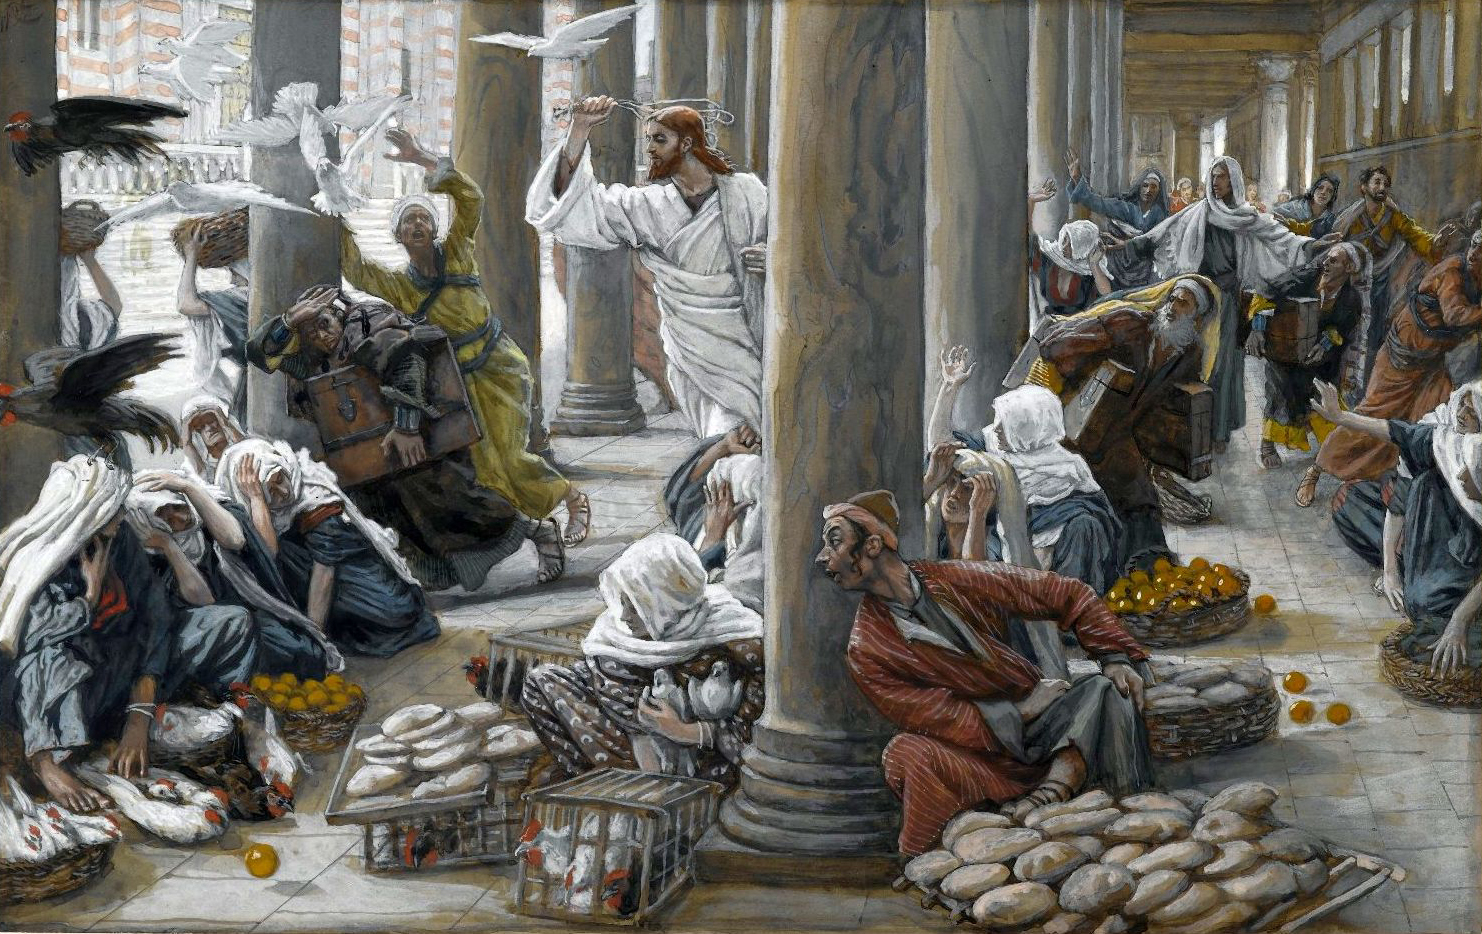 The Merchants Chased from the Temple, by James Tissot